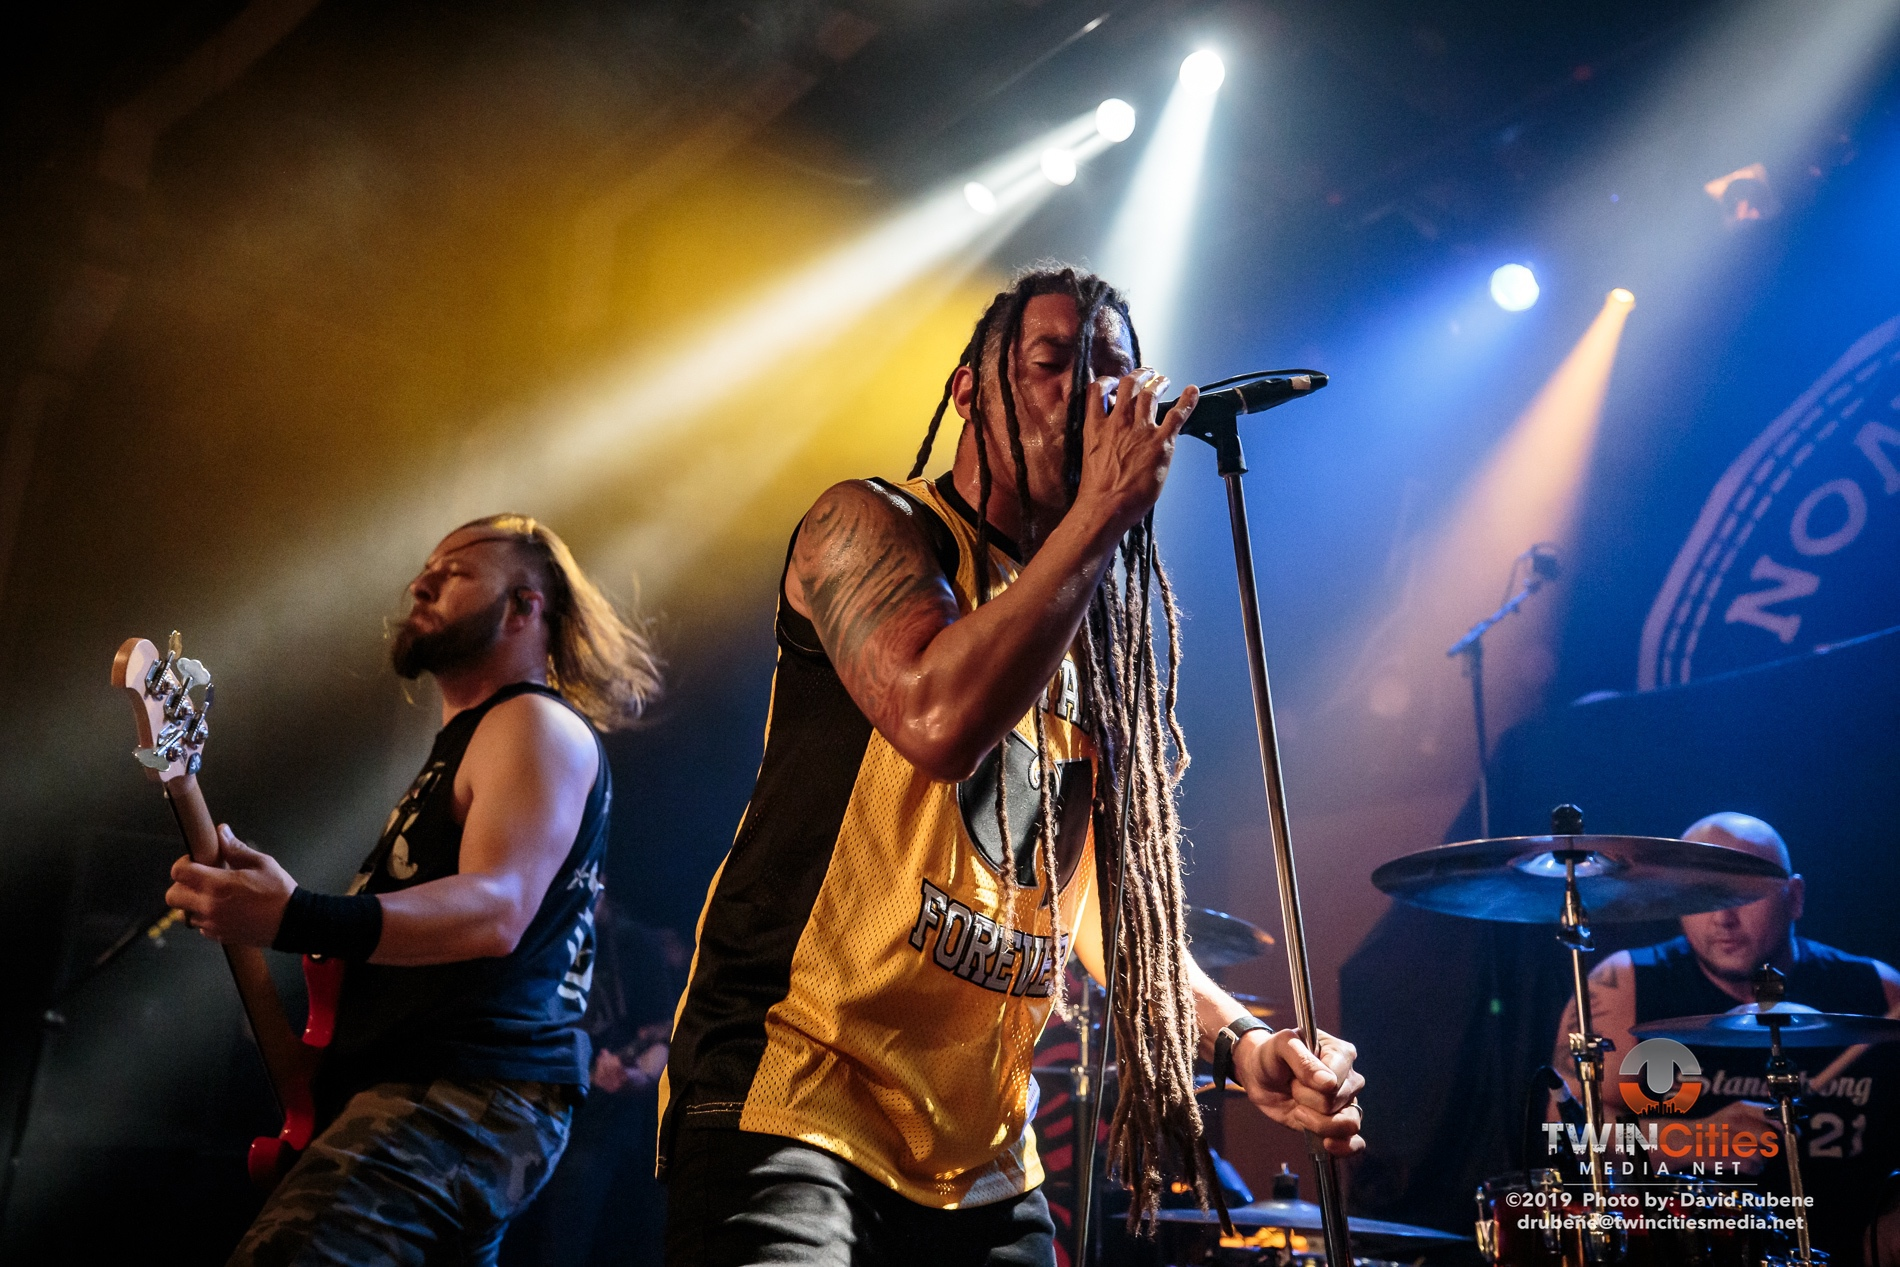 20190807-Nonpoint-117